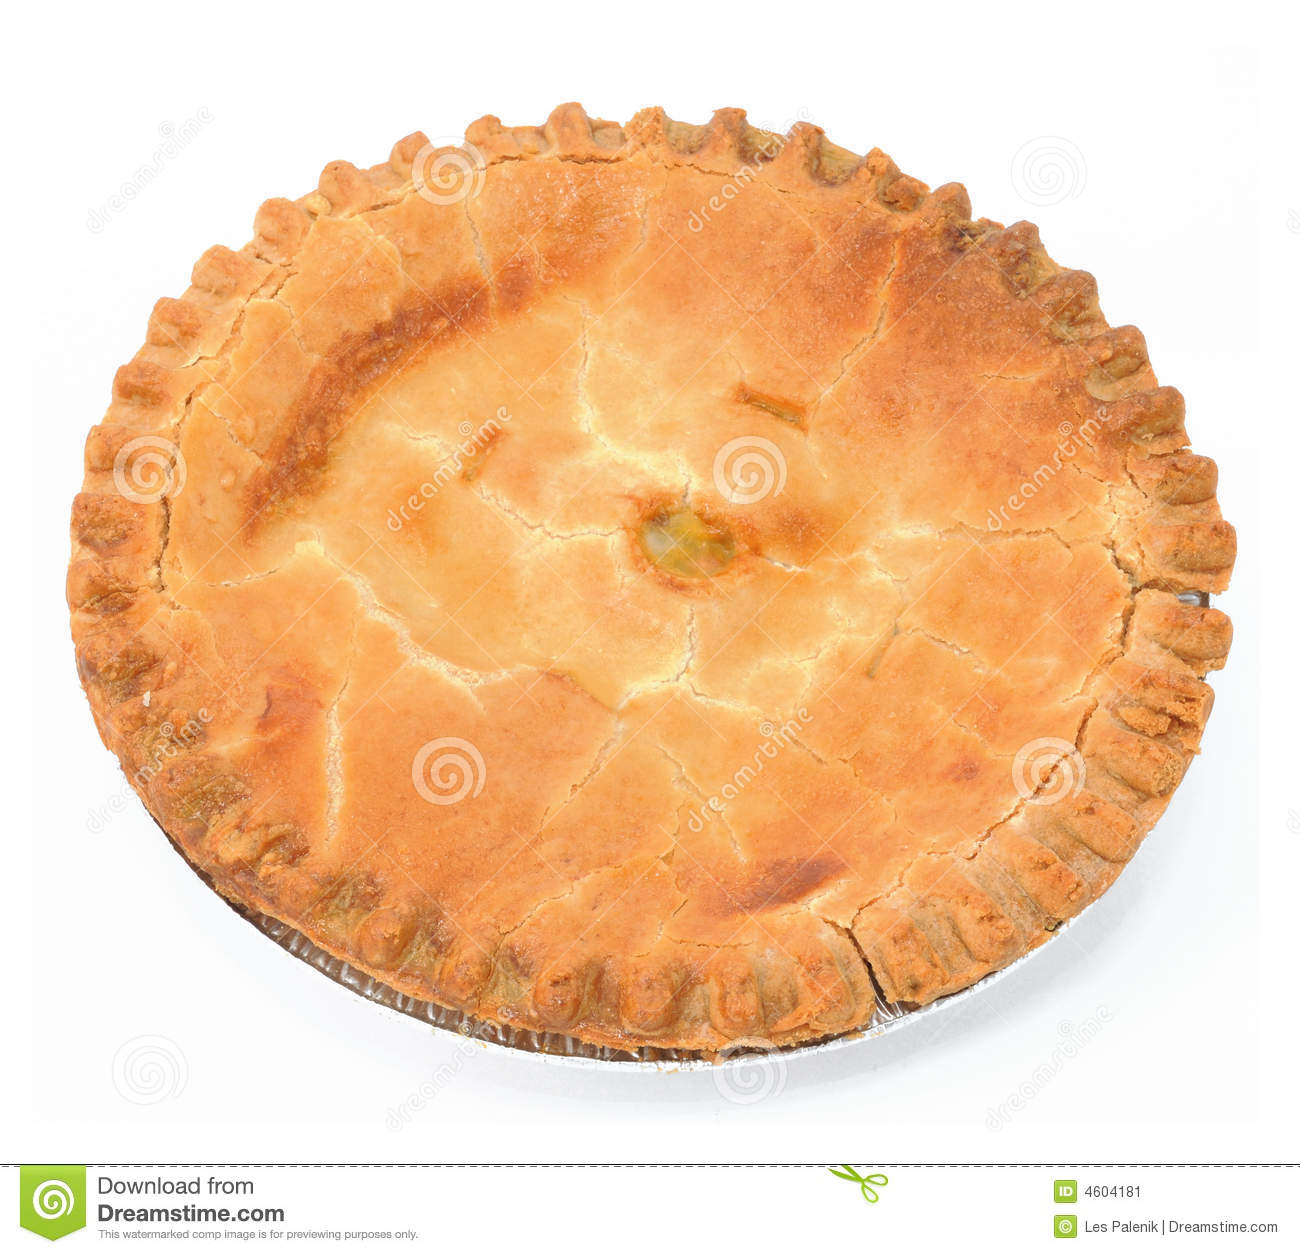 Peach Pie Stock Image   Image  4604181